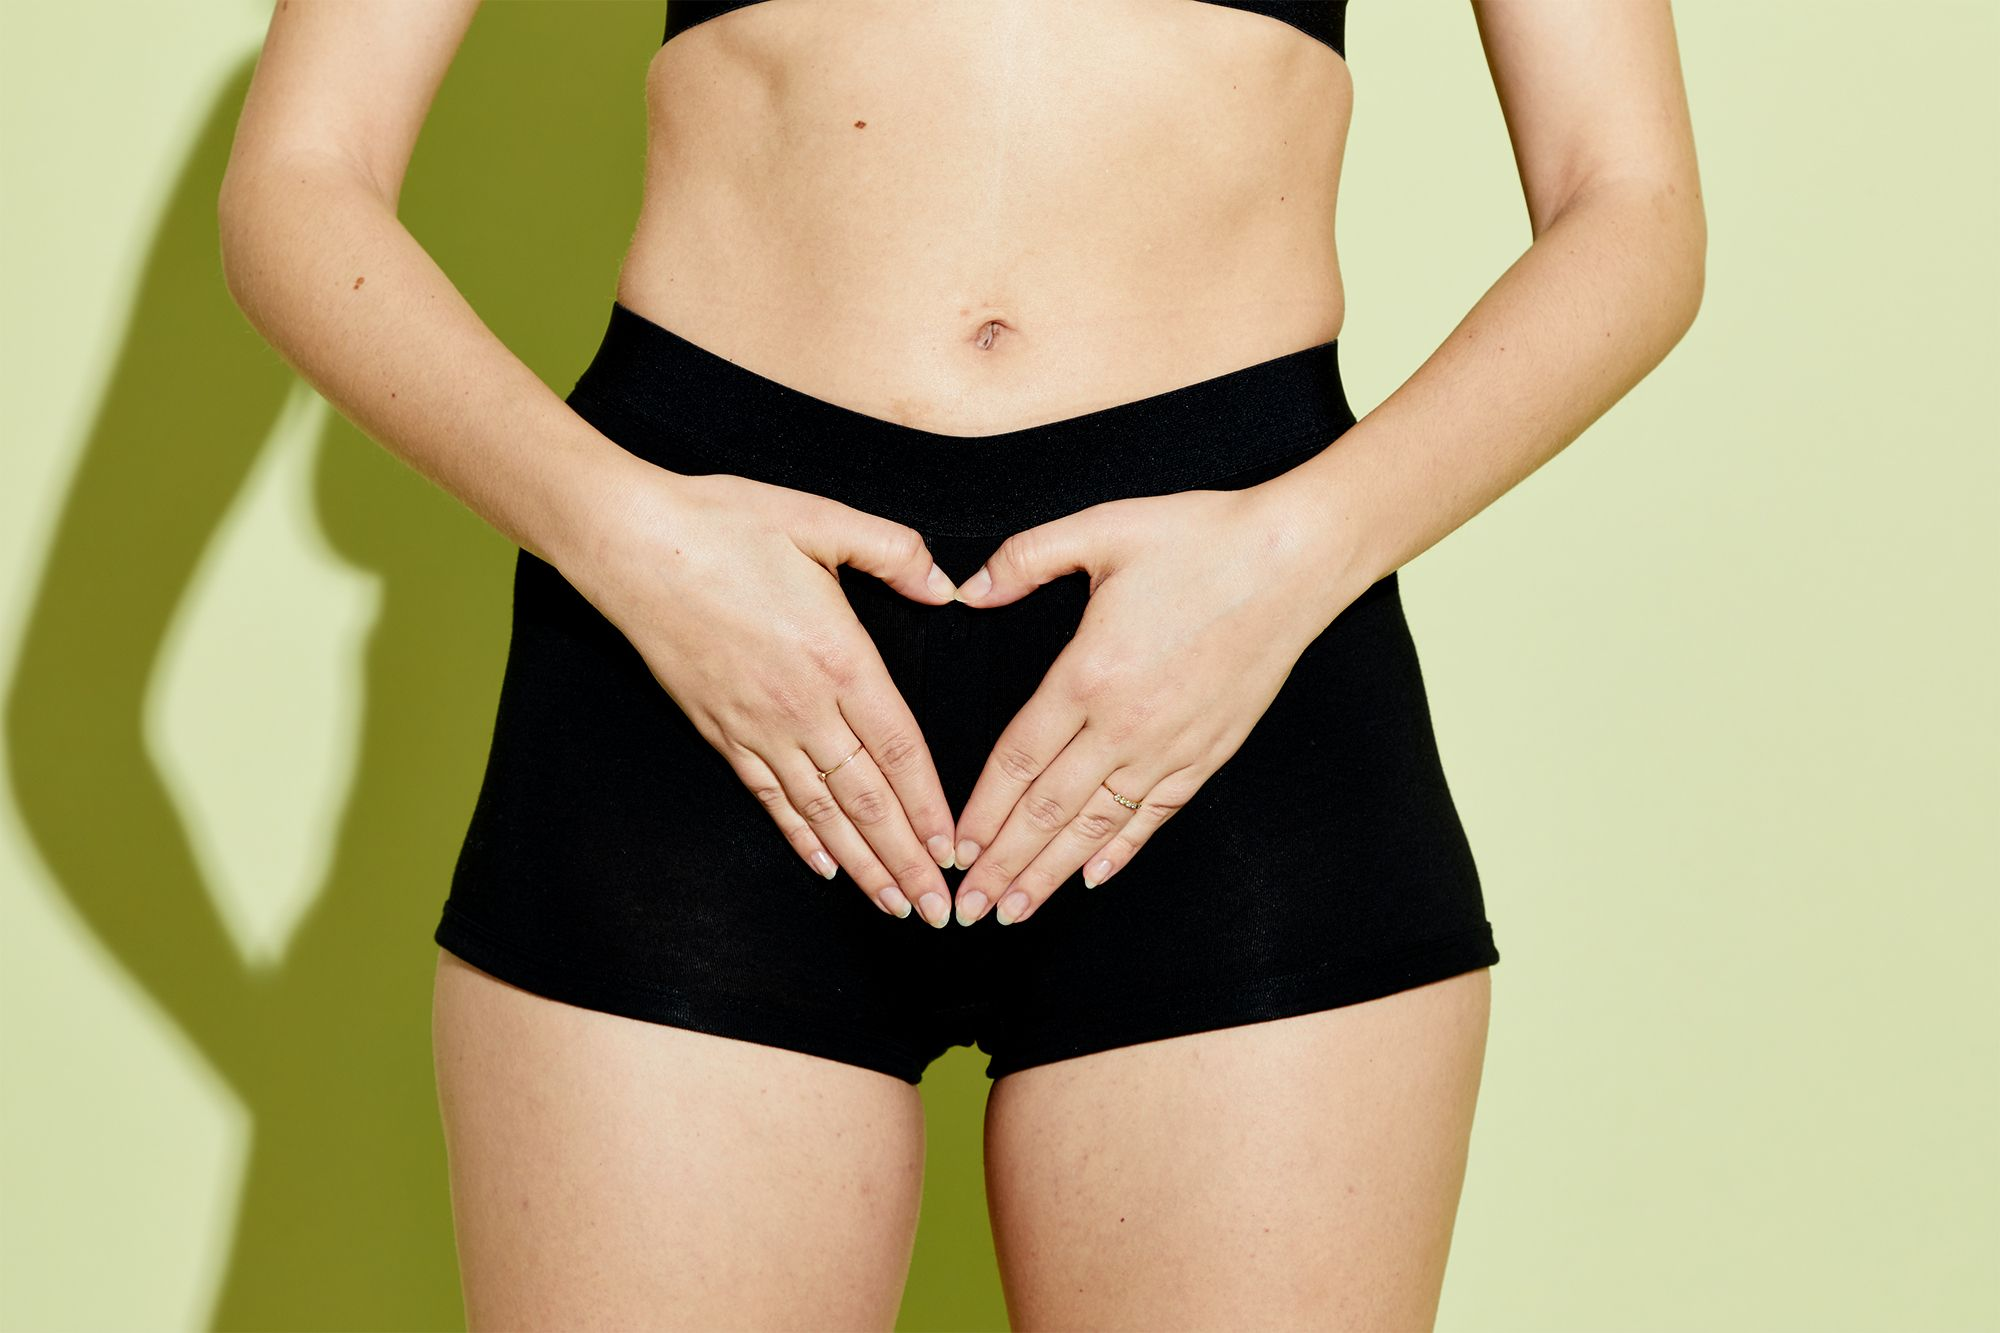 Even in 2020 women don't know enough about their bodies and as a result, are not able to take an active role in their care.